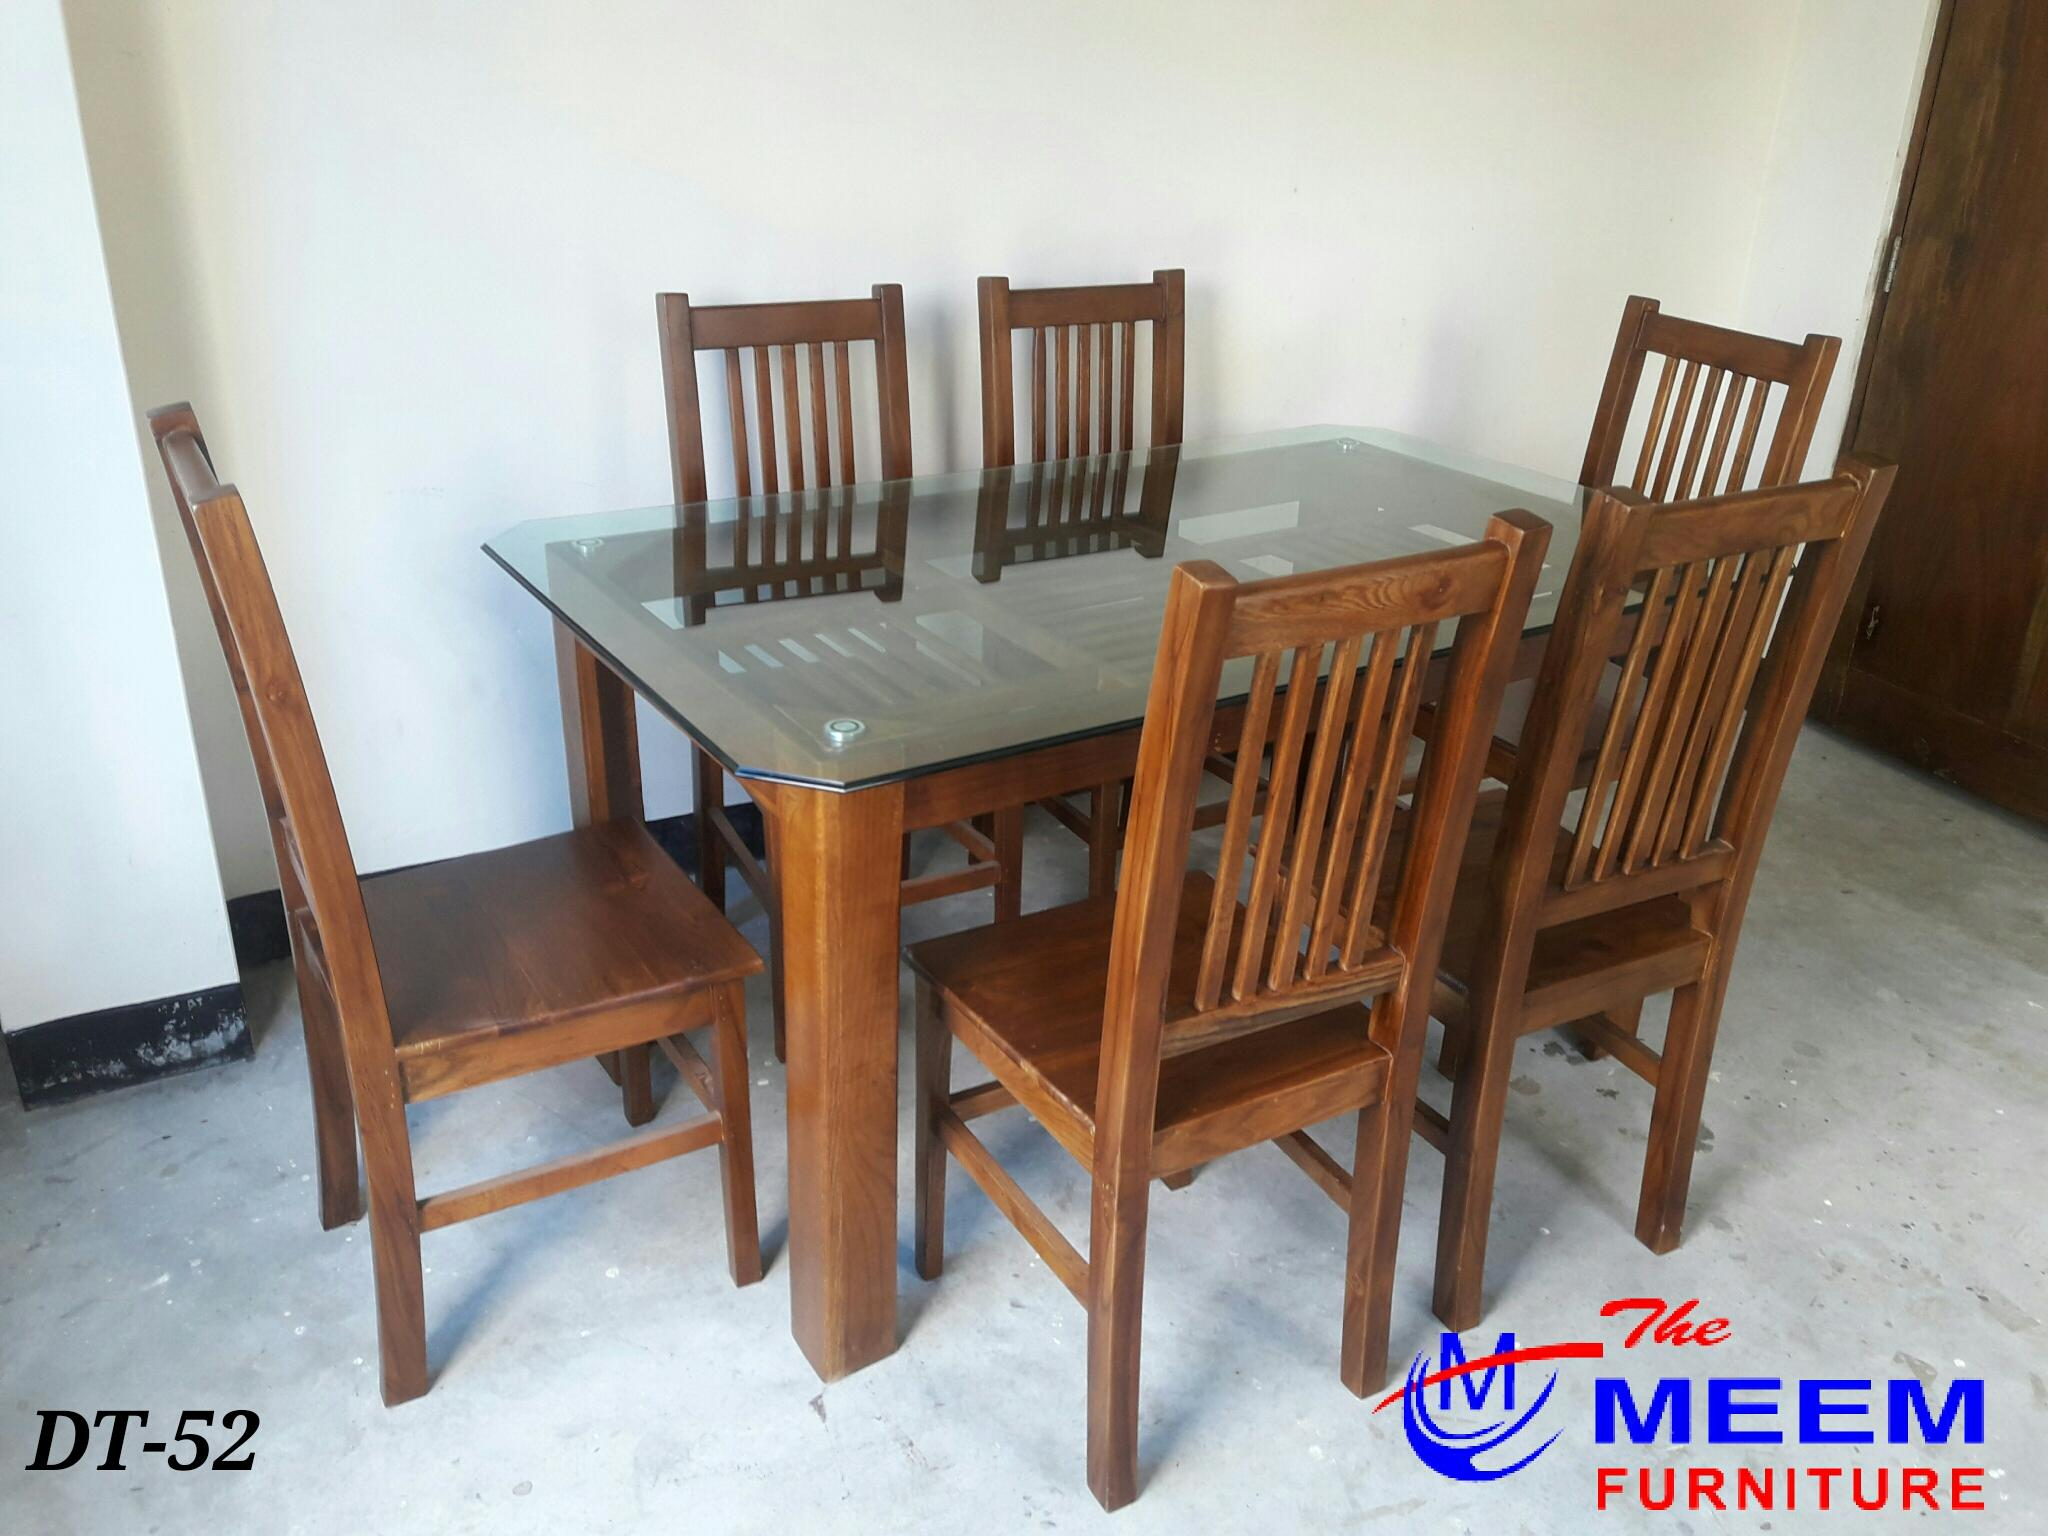 Dining Table With 6 Chair 5 X3 Full Ctg Segun Wood Buy Online At Best Prices In Bangladesh Daraz Com Bd